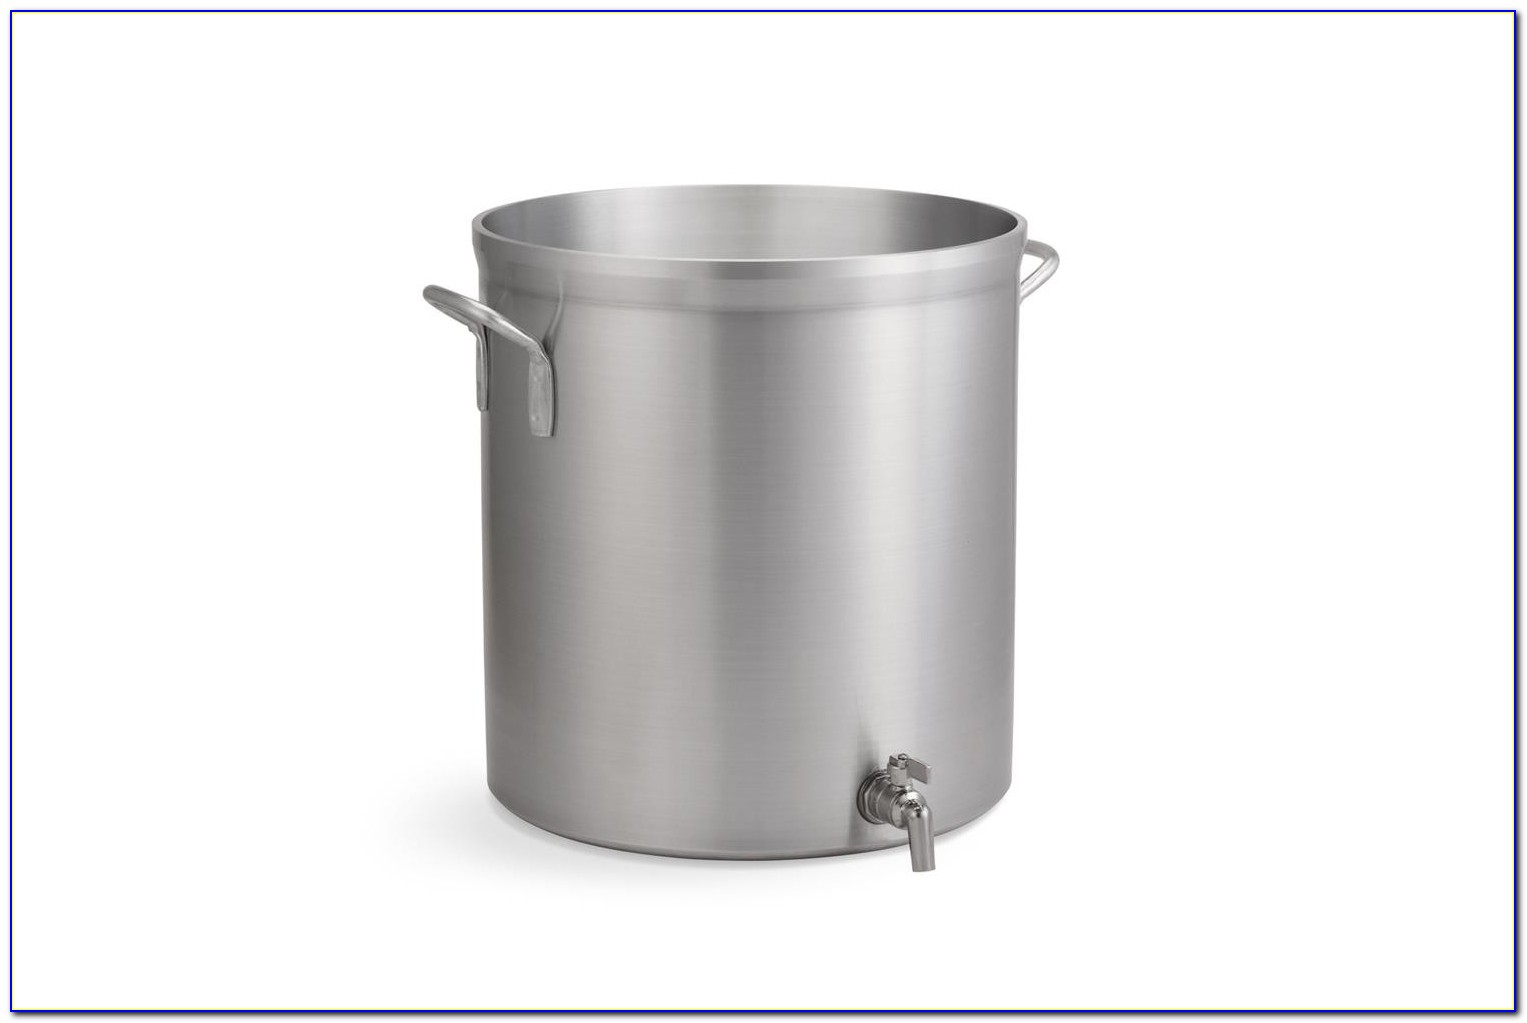 Stainless Steel Stock Pot With Faucet